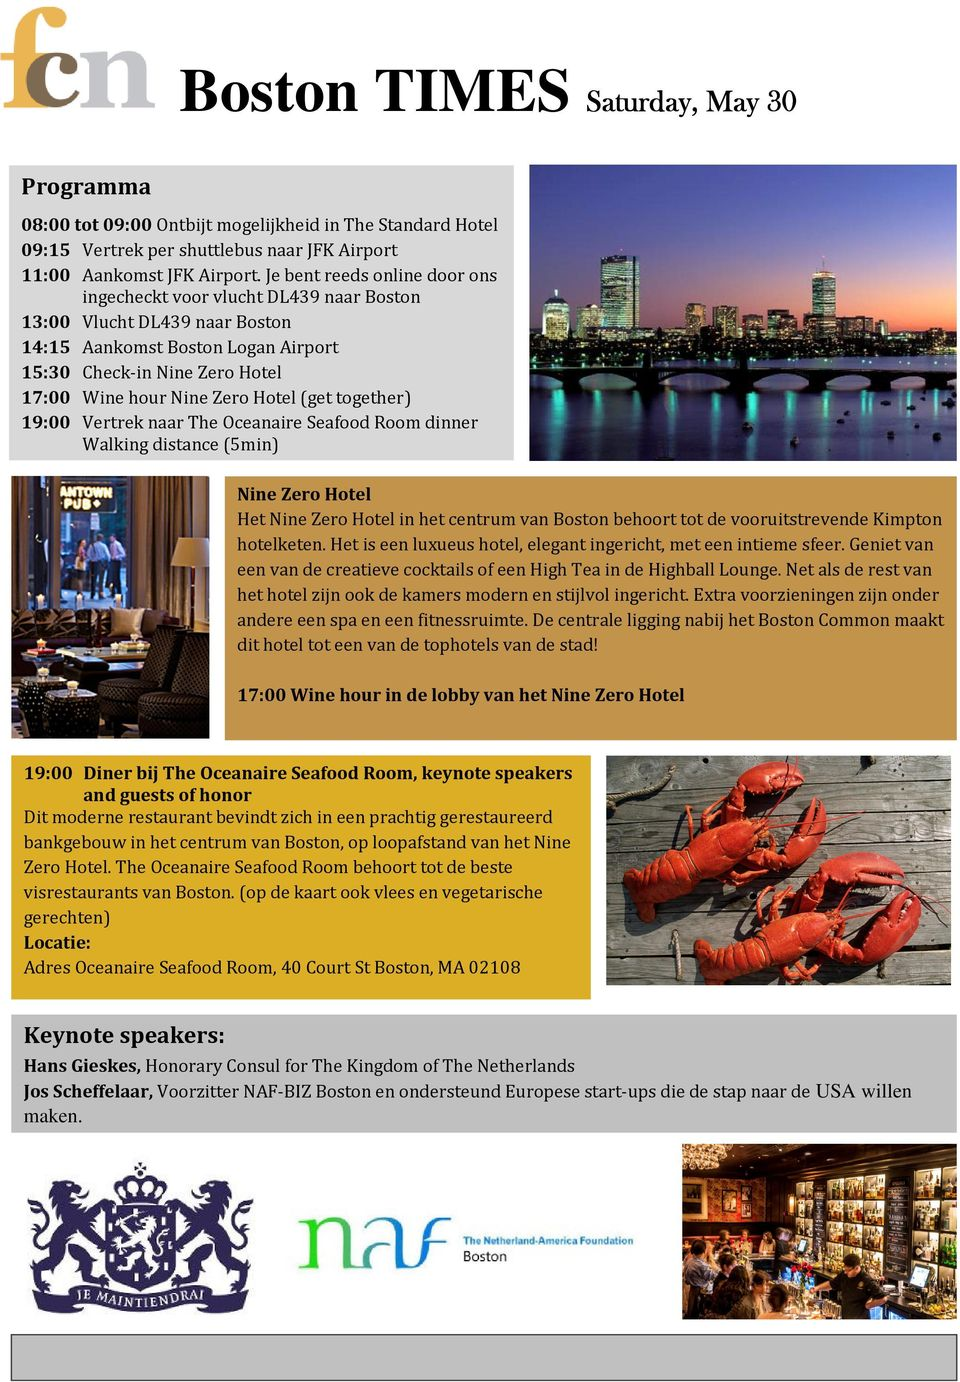 Hotel (get together) 19:00 Vertrek naar The Oceanaire Seafood Room dinner Walking distance (5min) Nine Zero Hotel Het Nine Zero Hotel in het centrum van Boston behoort tot de vooruitstrevende Kimpton